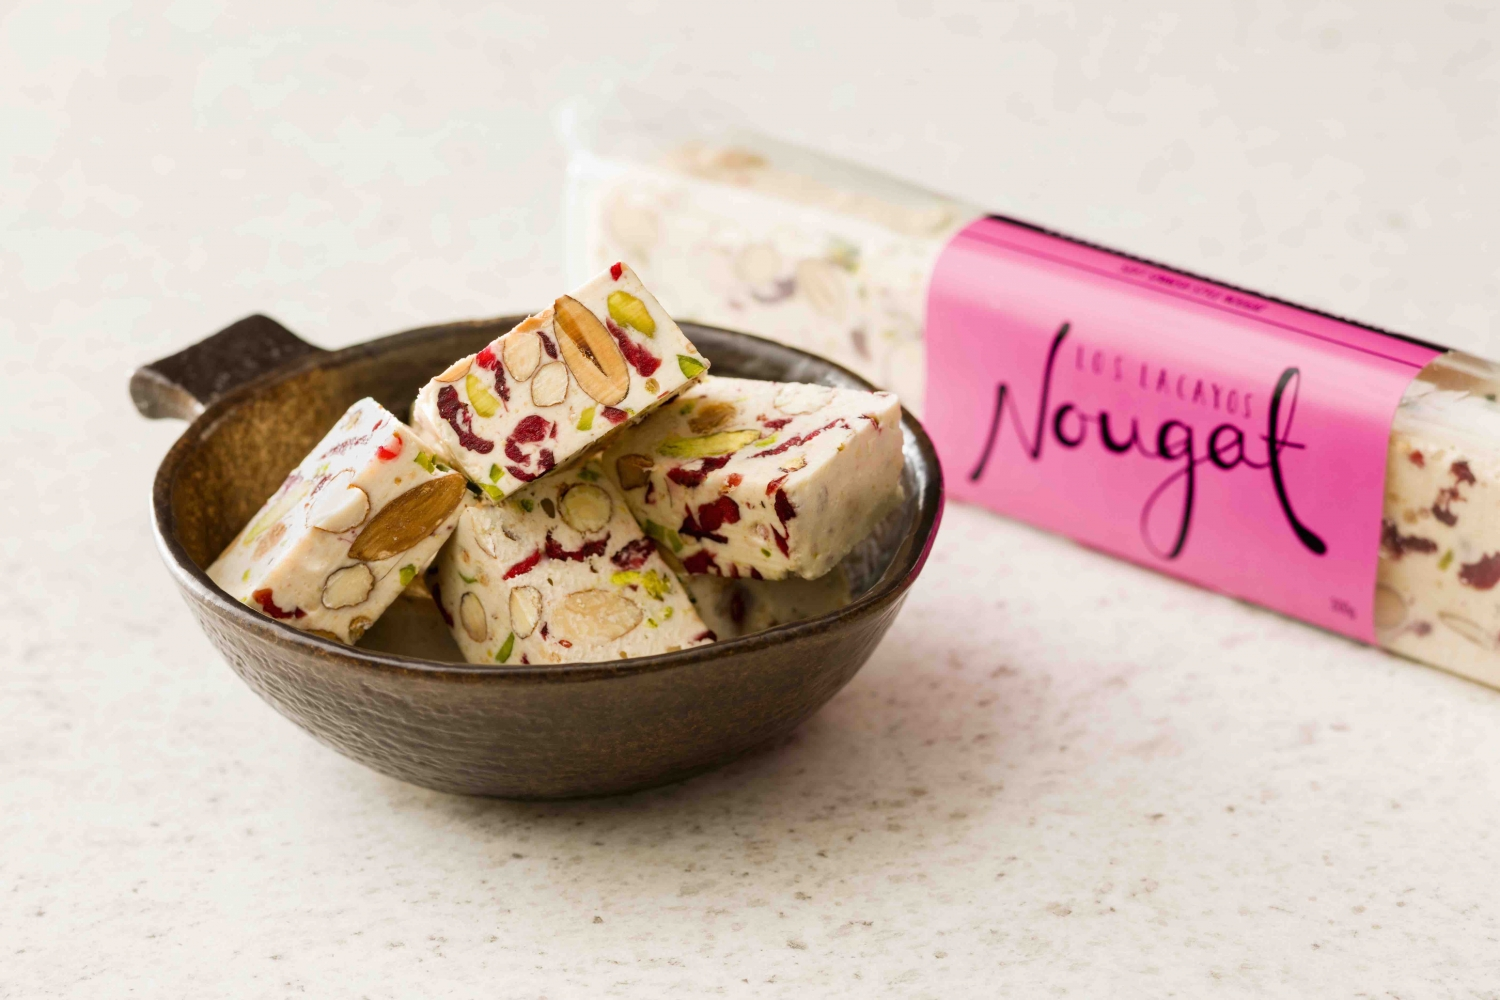 bowl and packet of nougat